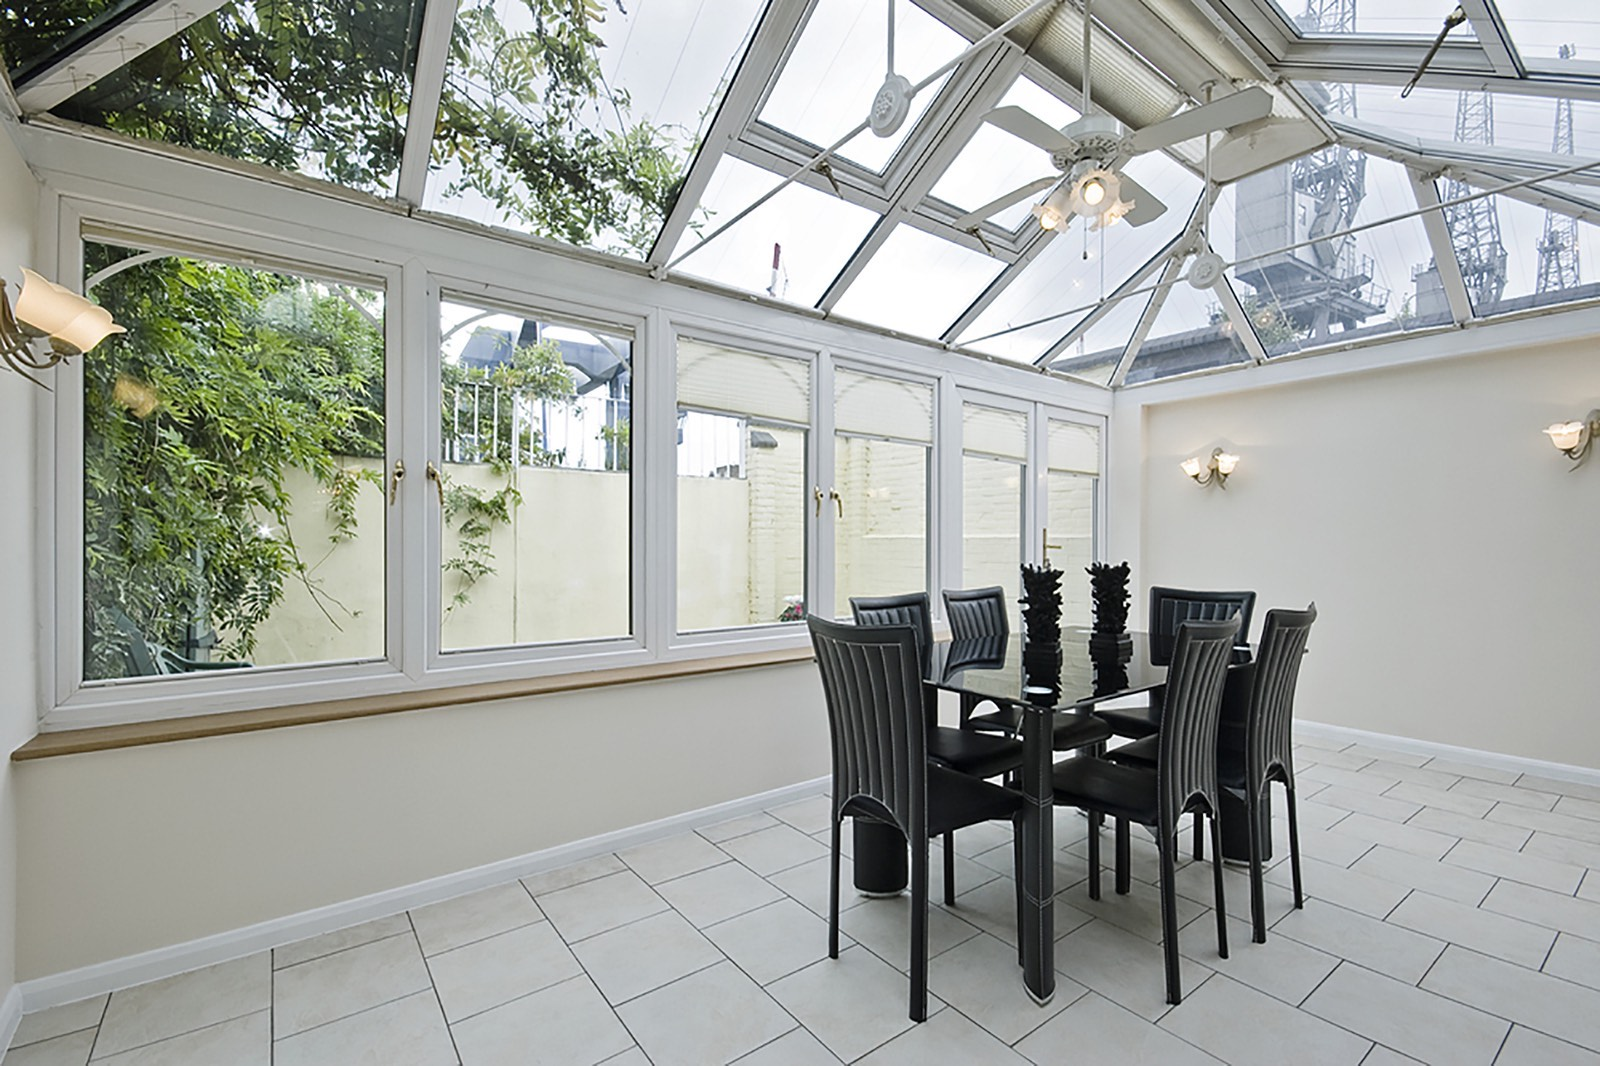 Edwardian Conservatory Extension Sidcup, Kent